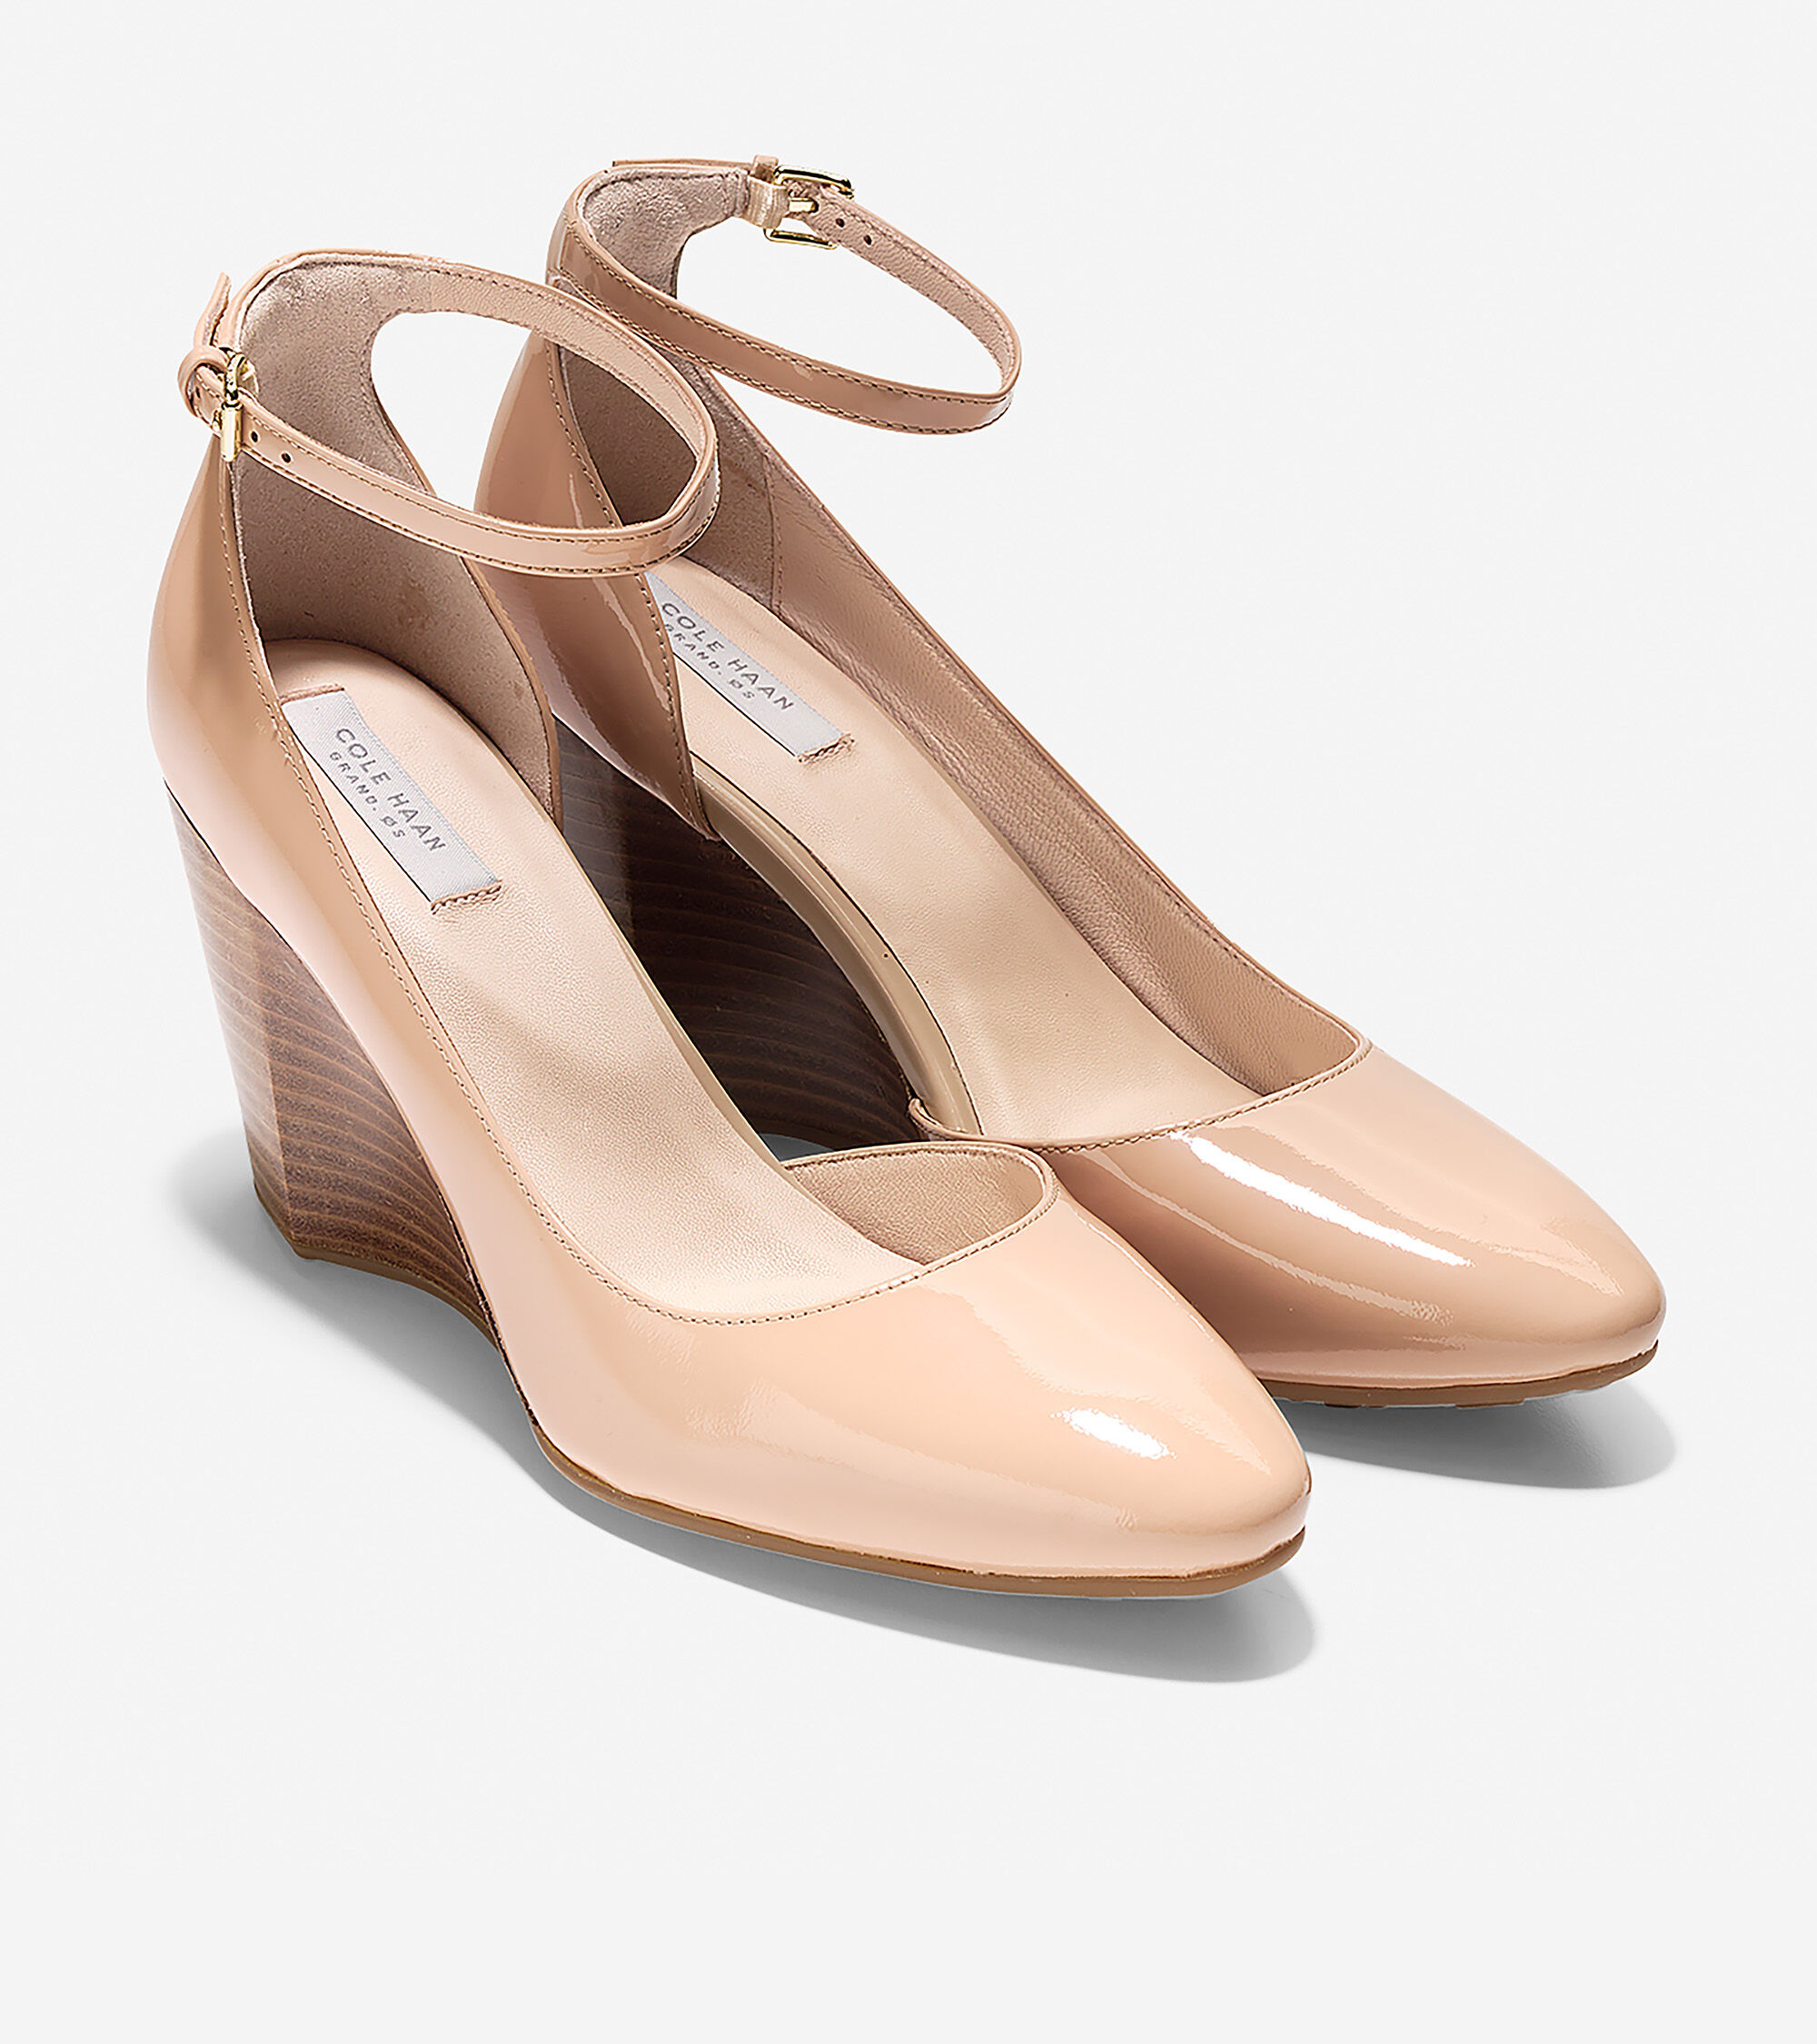 98d422946272 Lacey Ankle Strap Wedges 85mm in Nude Patent | Cole Haan